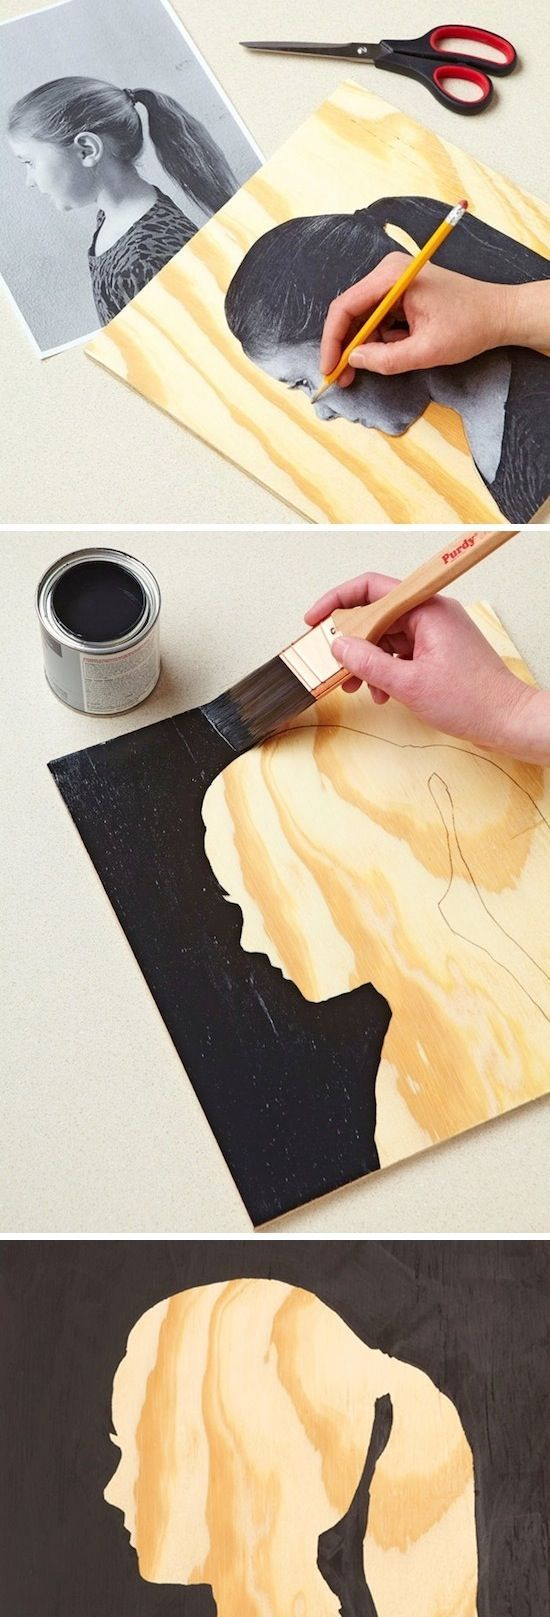 15 Simple Ideas to Make Wall Arts in 2018 | Woodwork | Pinterest ...